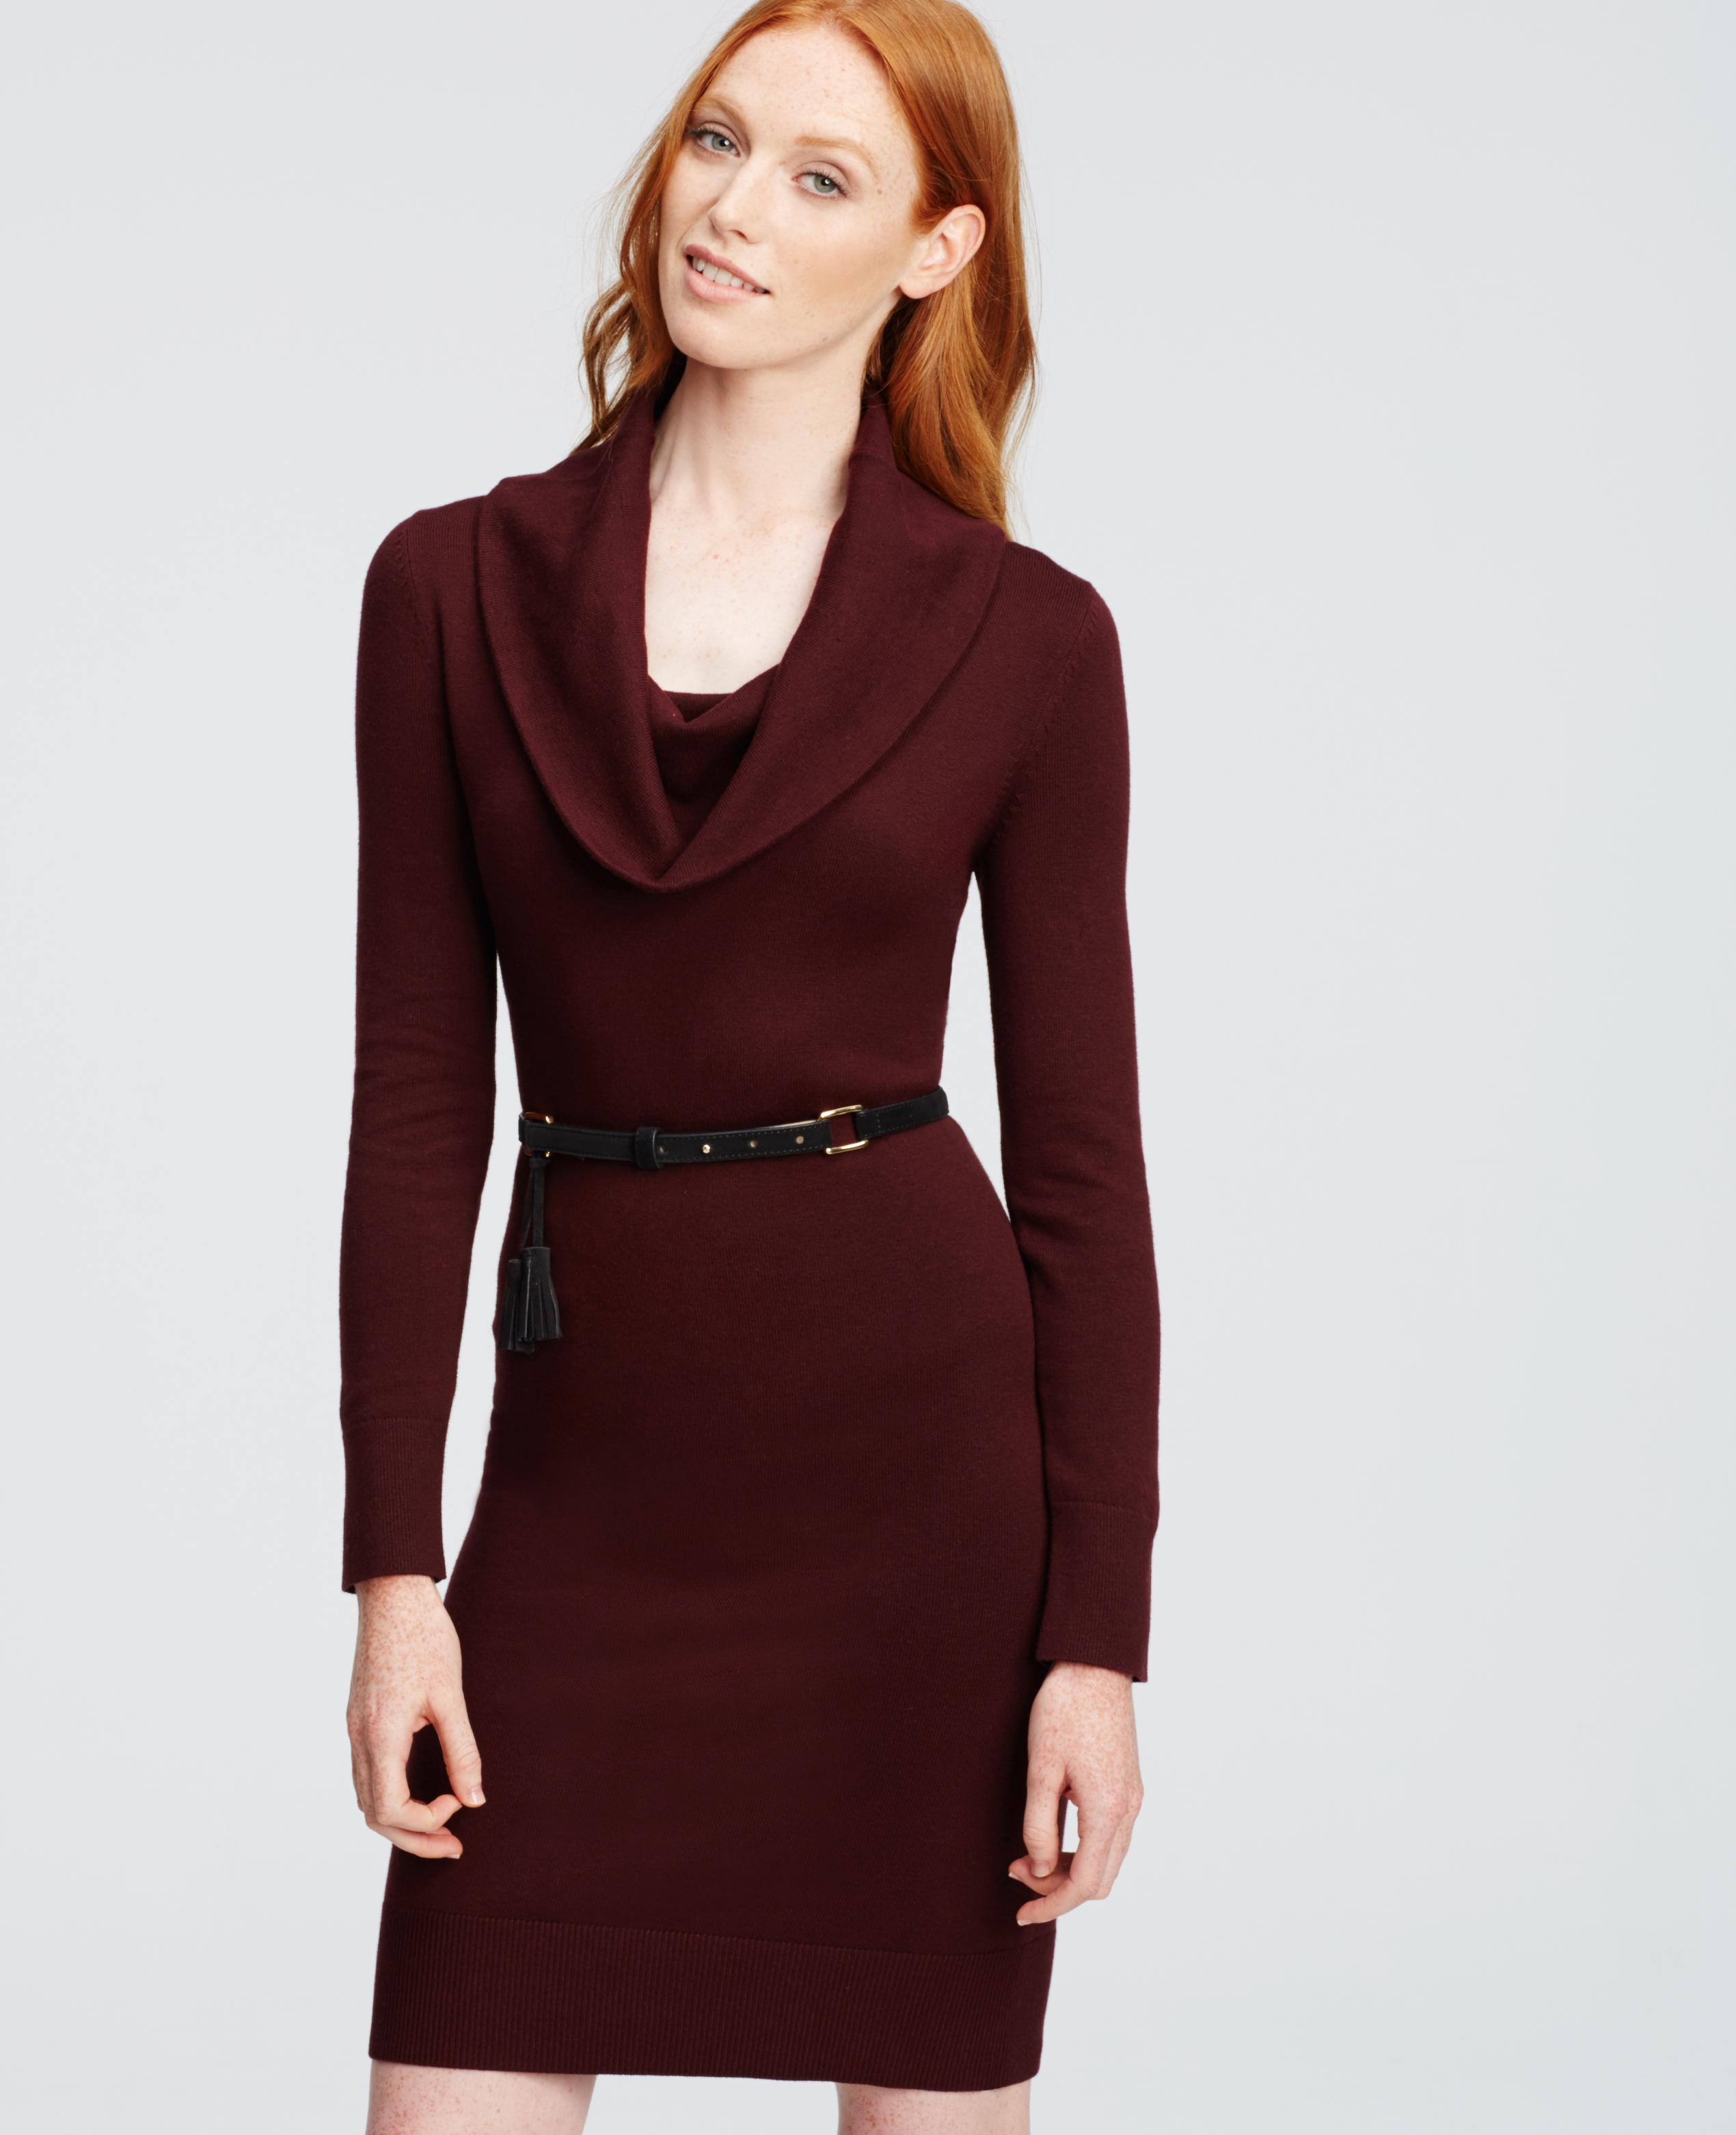 Ann taylor Cowl Neck Sweater Dress in Red | Lyst